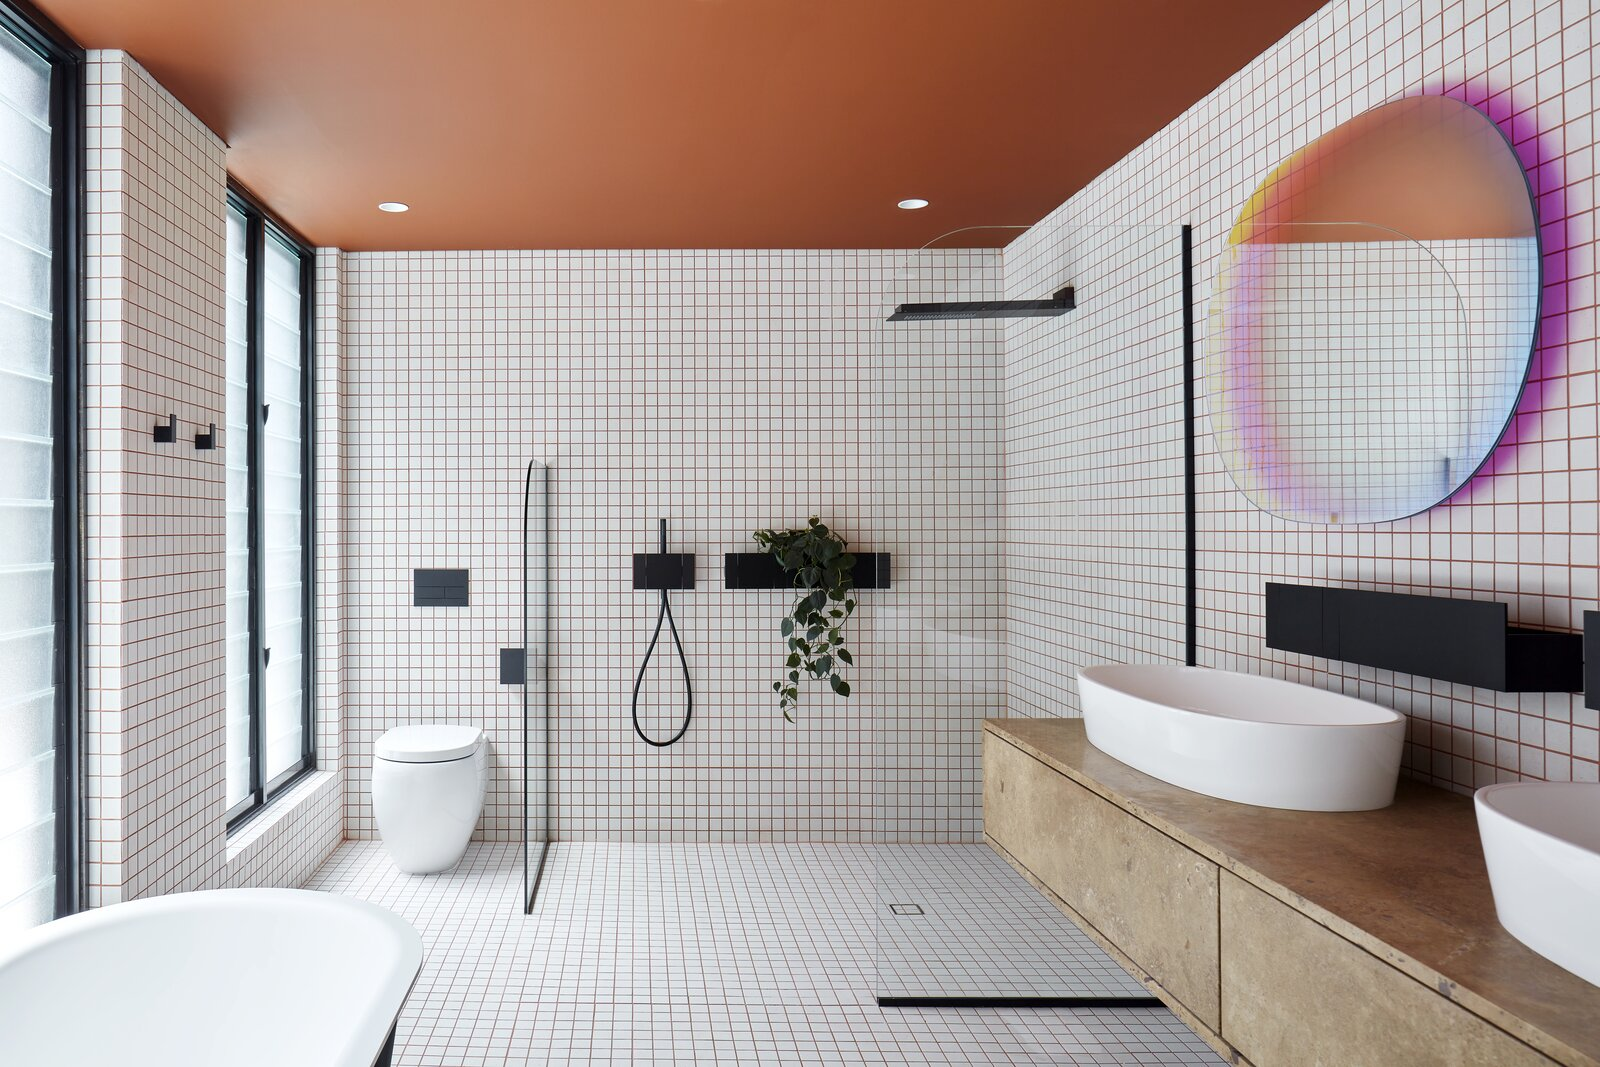 Bath, Stone, One Piece, Ceramic Tile, Open, Vessel, Recessed, Subway Tile, Freestanding, and Ceramic Tile  Bath Ceramic Tile Subway Tile Photos from Shutter House